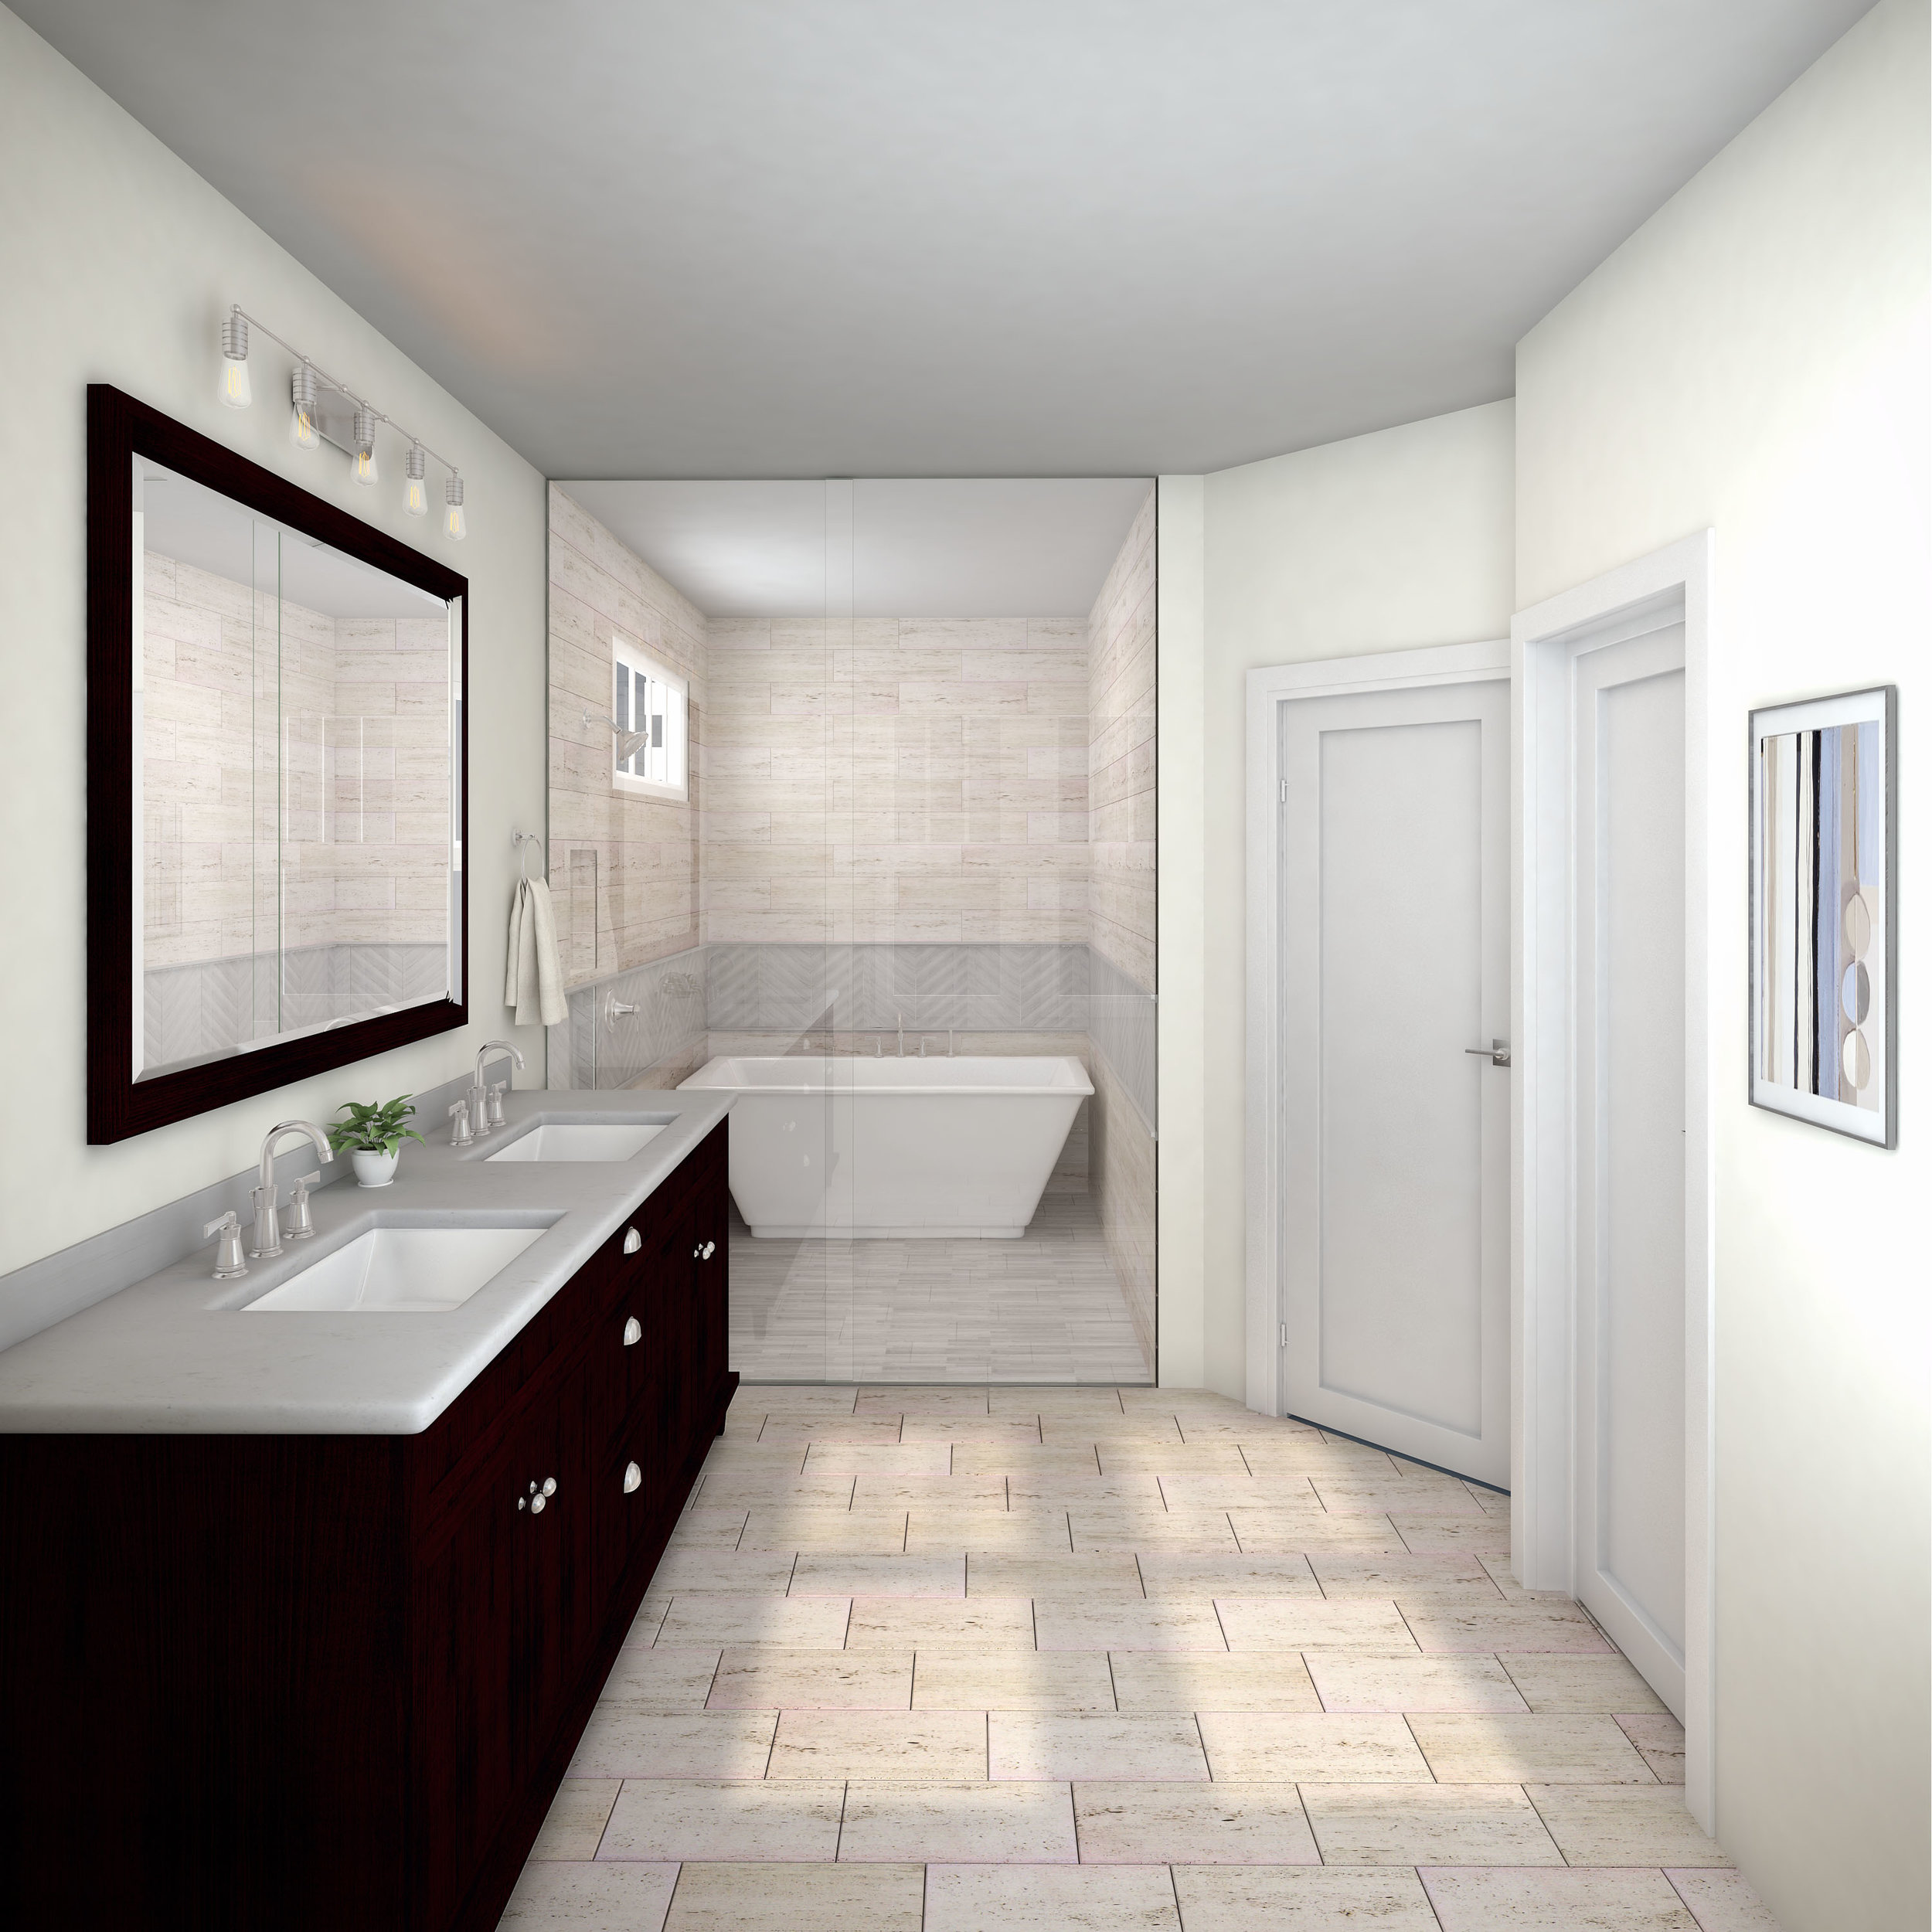 Abingdon Estates - Modern Bath.jpg